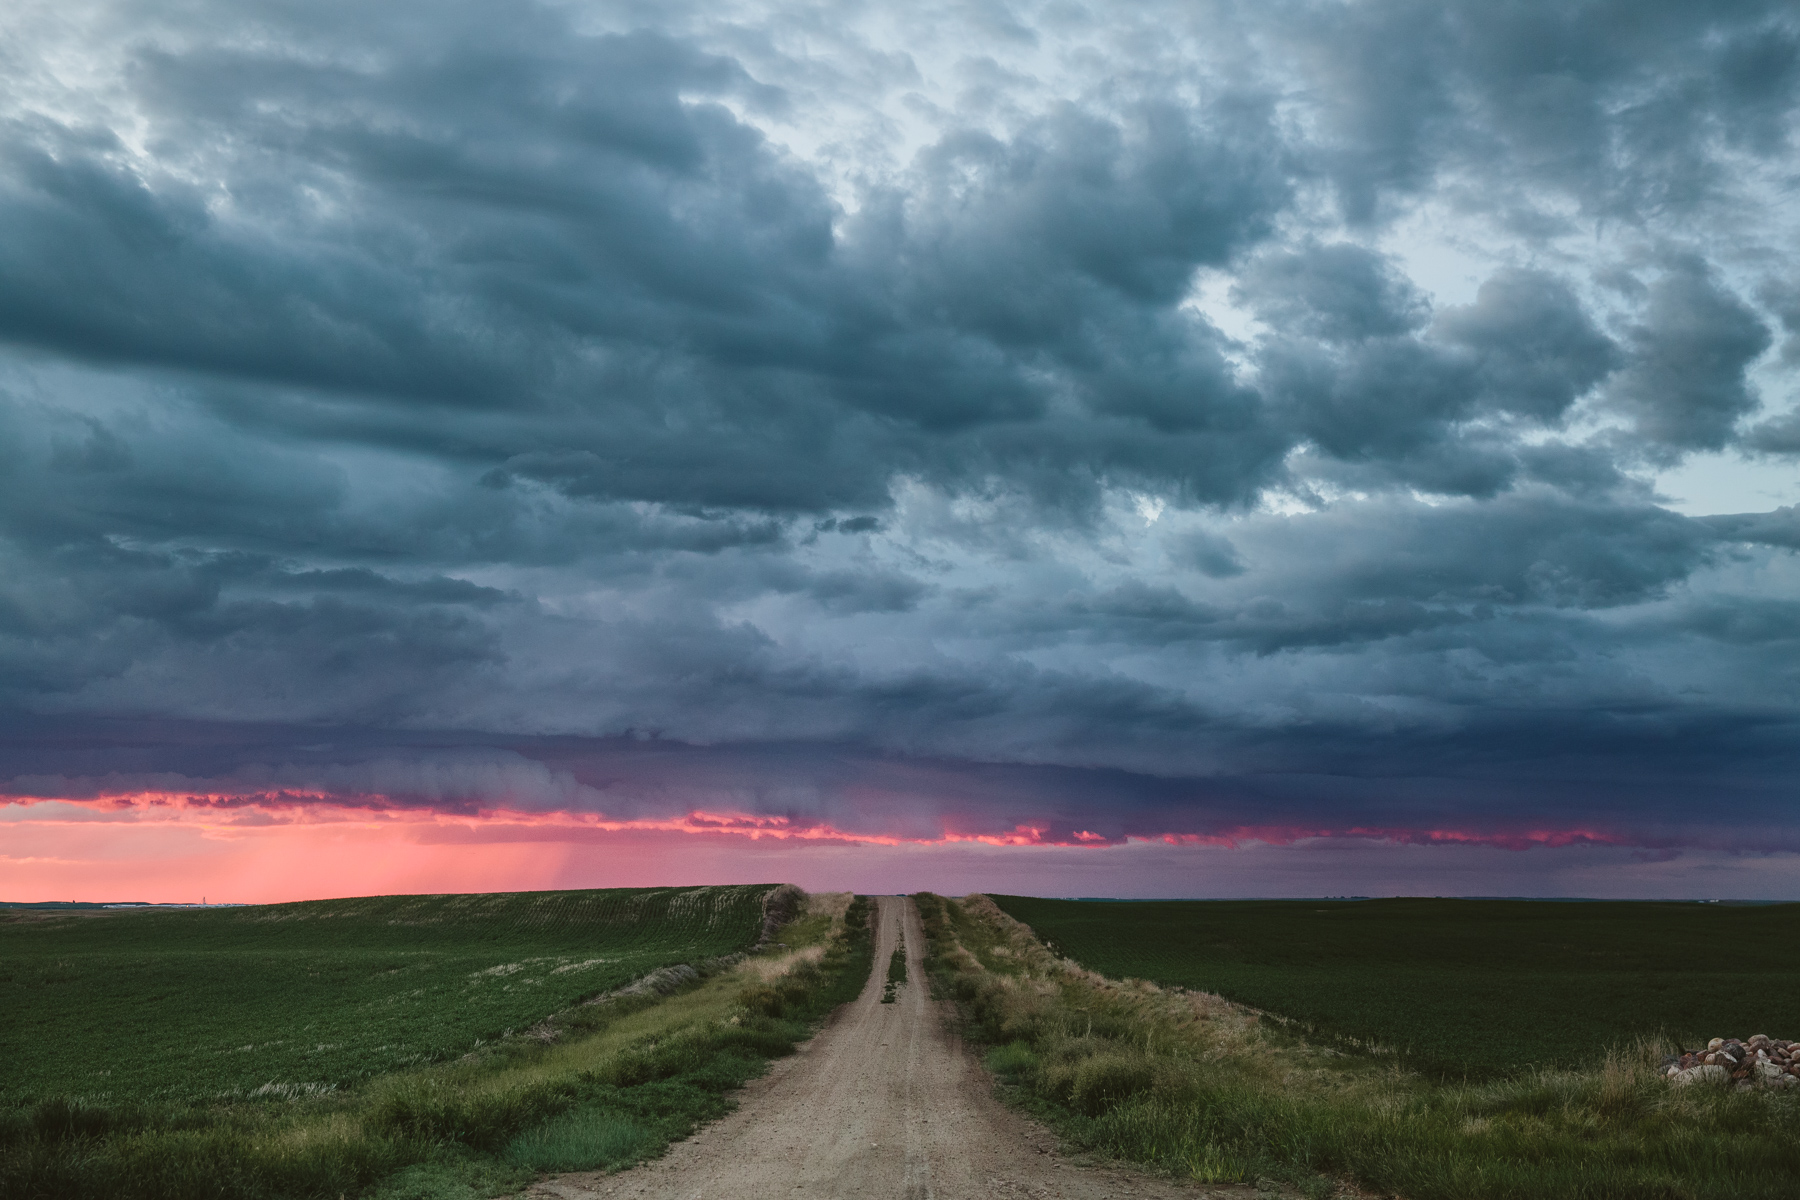 alberta-landscape-lifestyle-photography-mikeseehagel-17